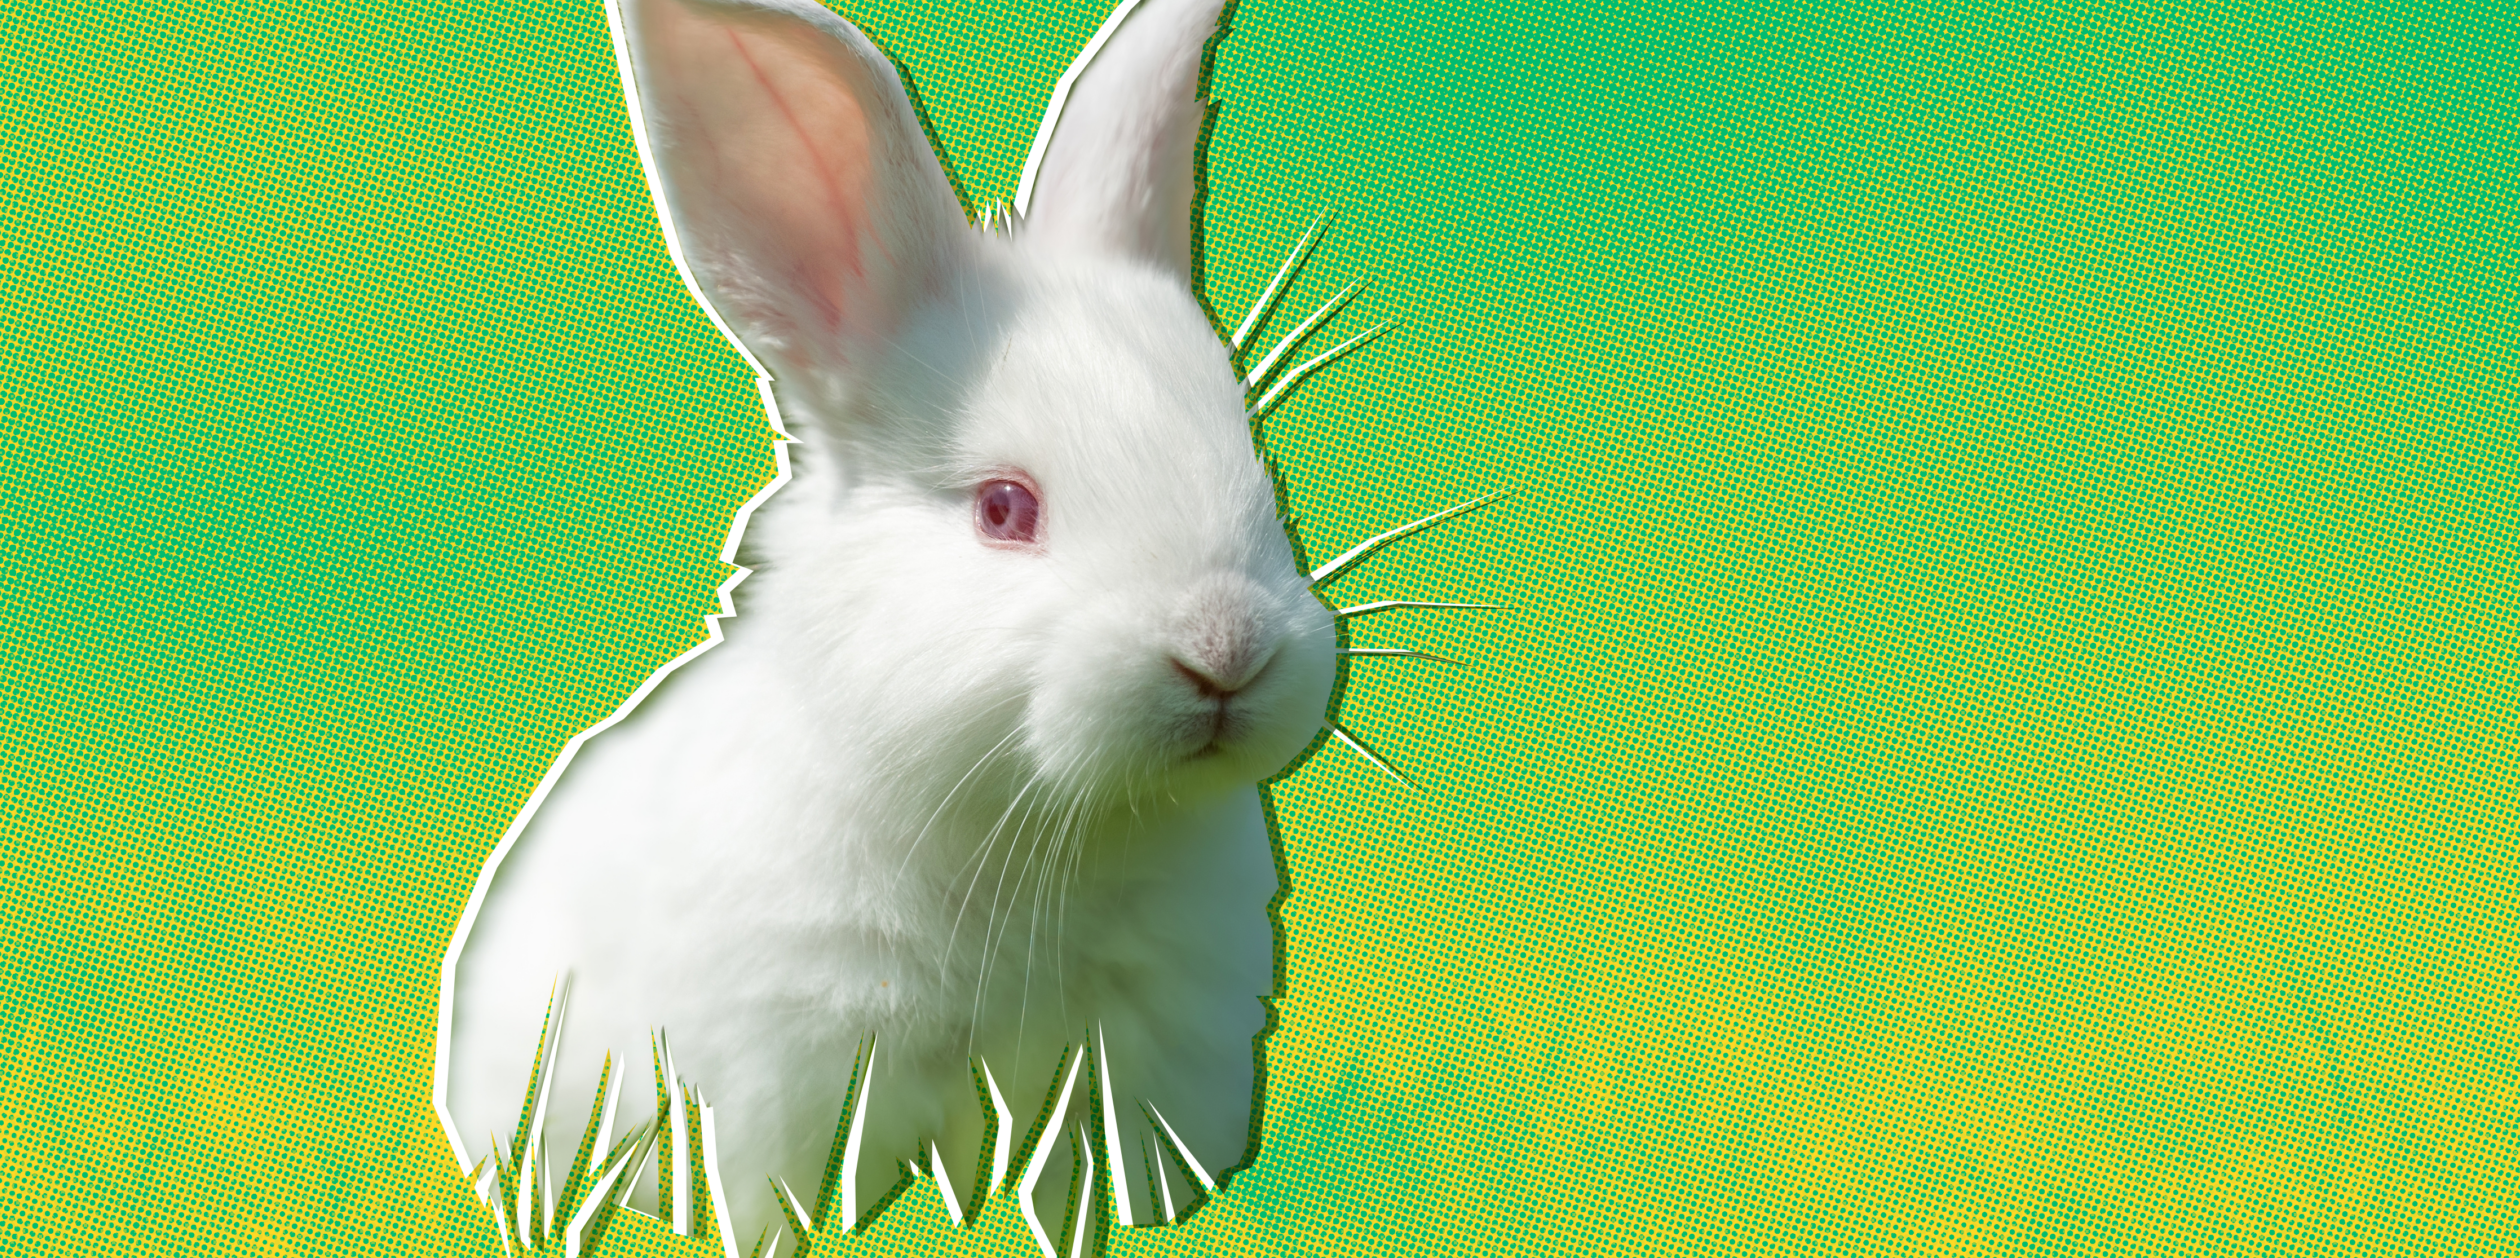 A white rabbit is displayed against a stylized green and yellow background